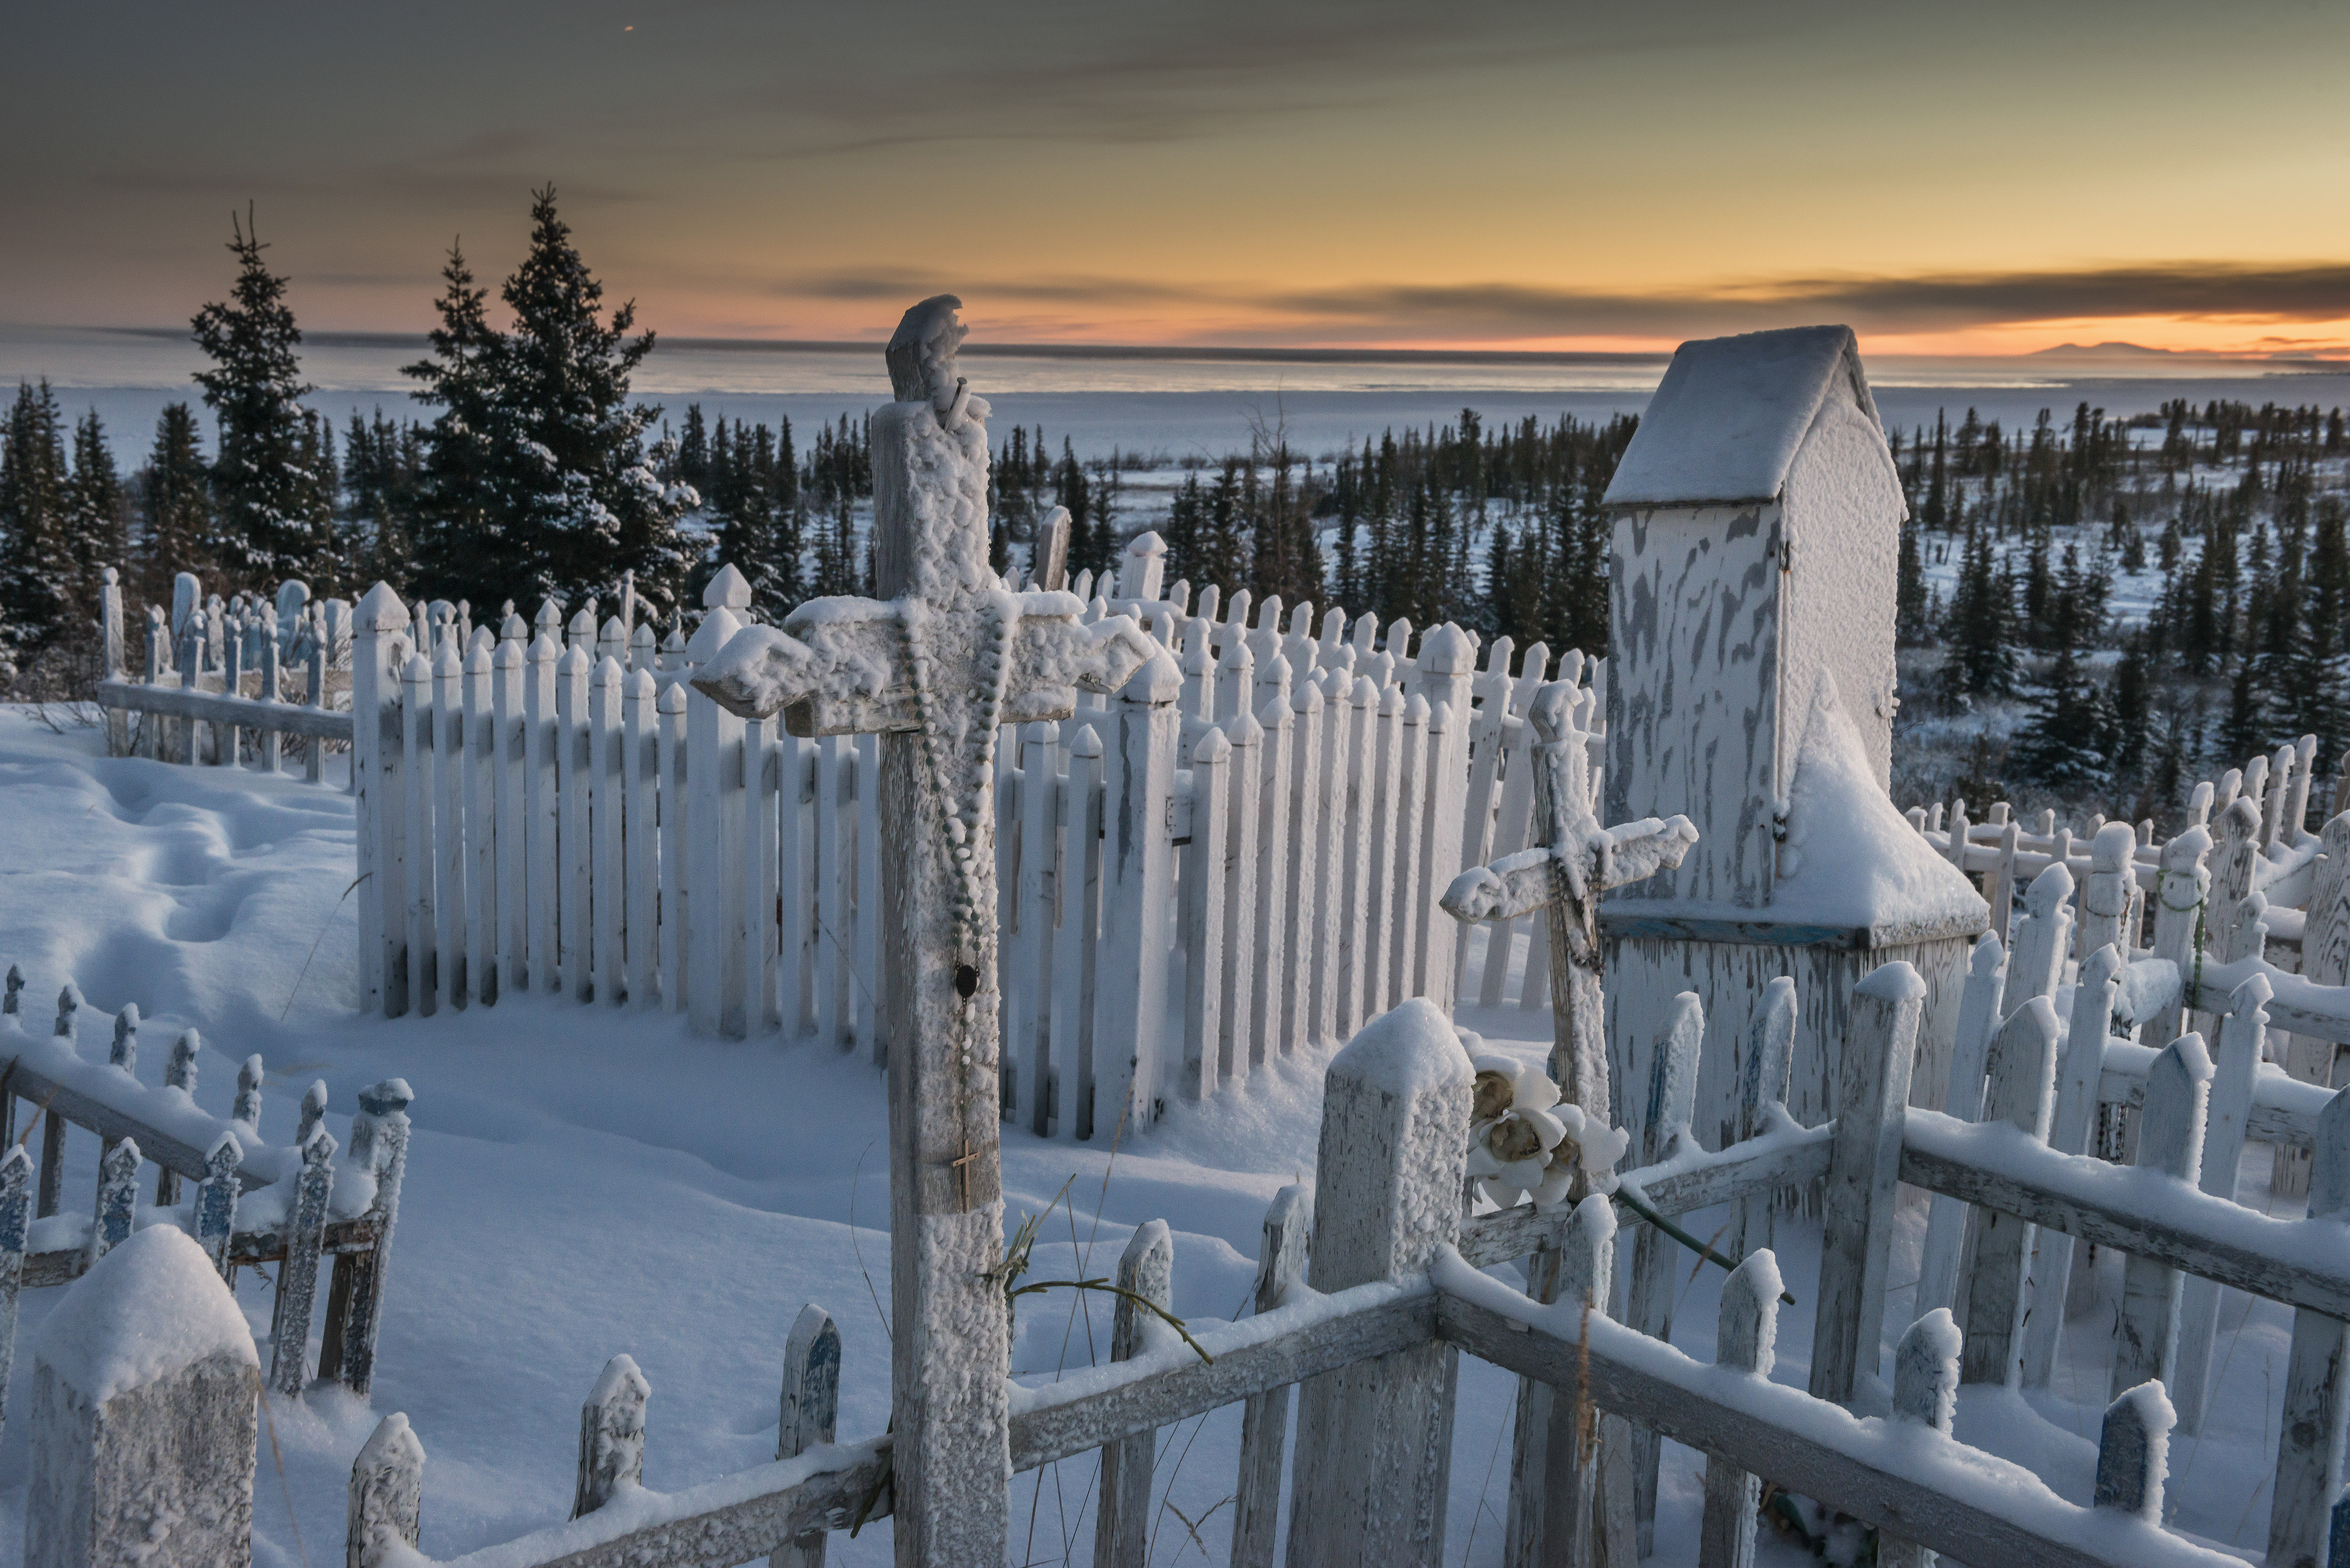 Grave sites near the edge of Great Bear Lake in Deline, a village near the